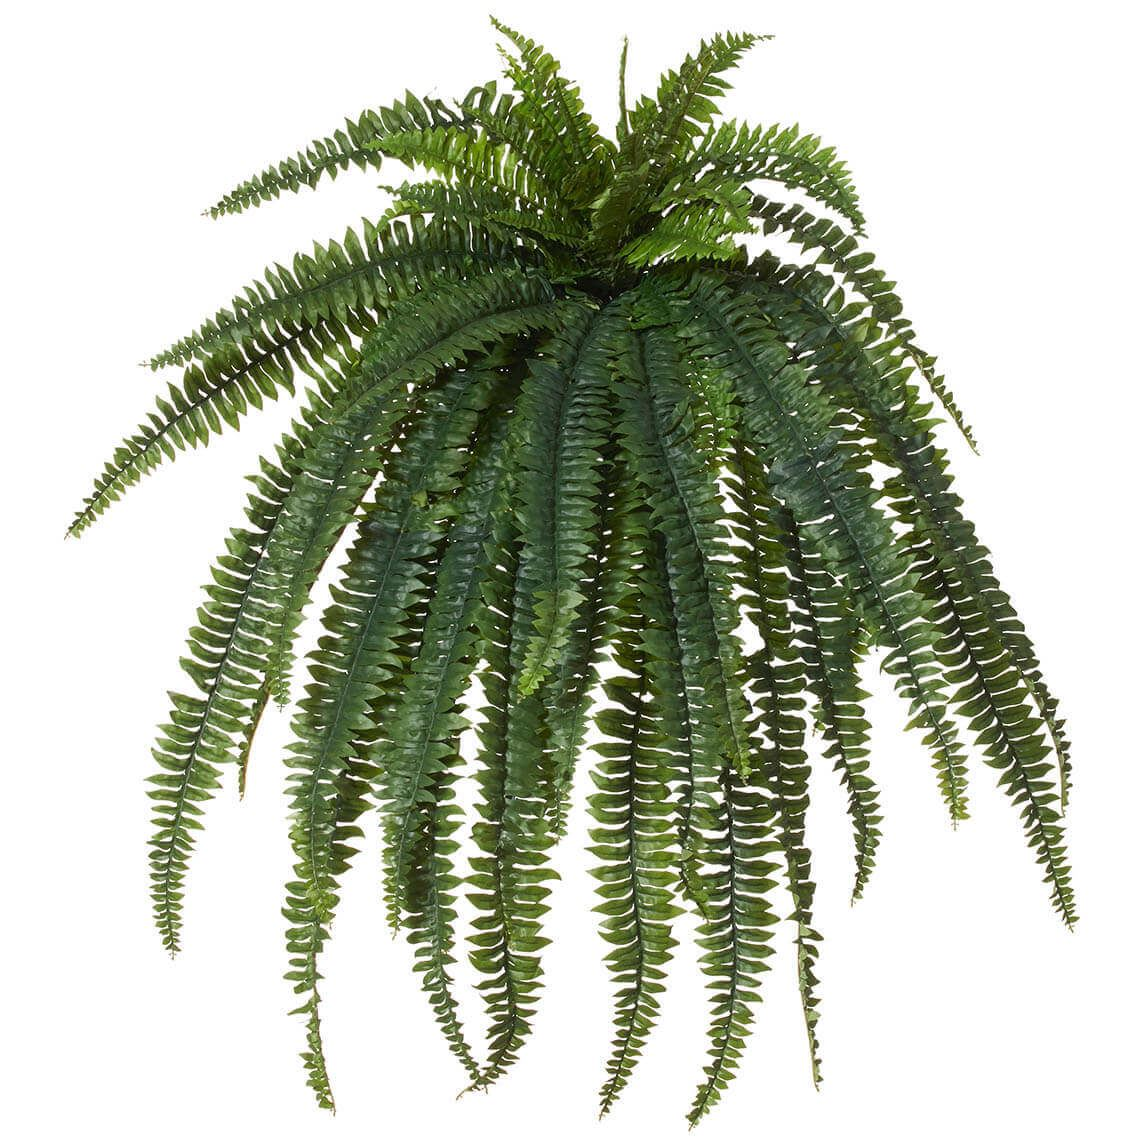 Boston Fern Giant Size W 100cm x D 100cm x H 122cm in Green Plastic/Wire Freedom by Freedom, a Plants for sale on Style Sourcebook